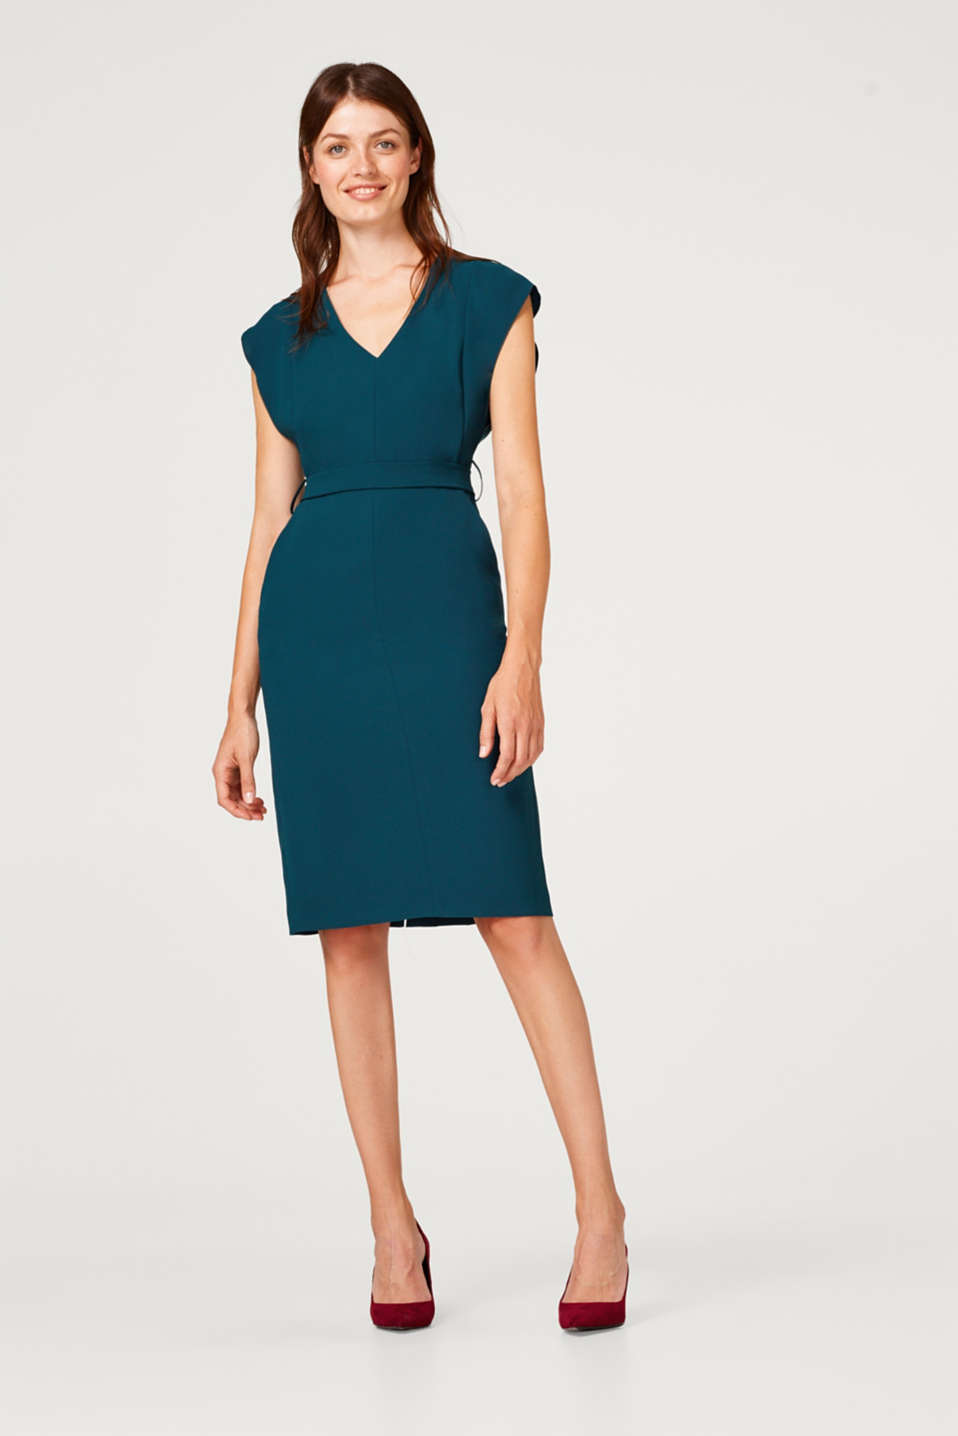 Woven dress with cap sleeves and a tie-around belt